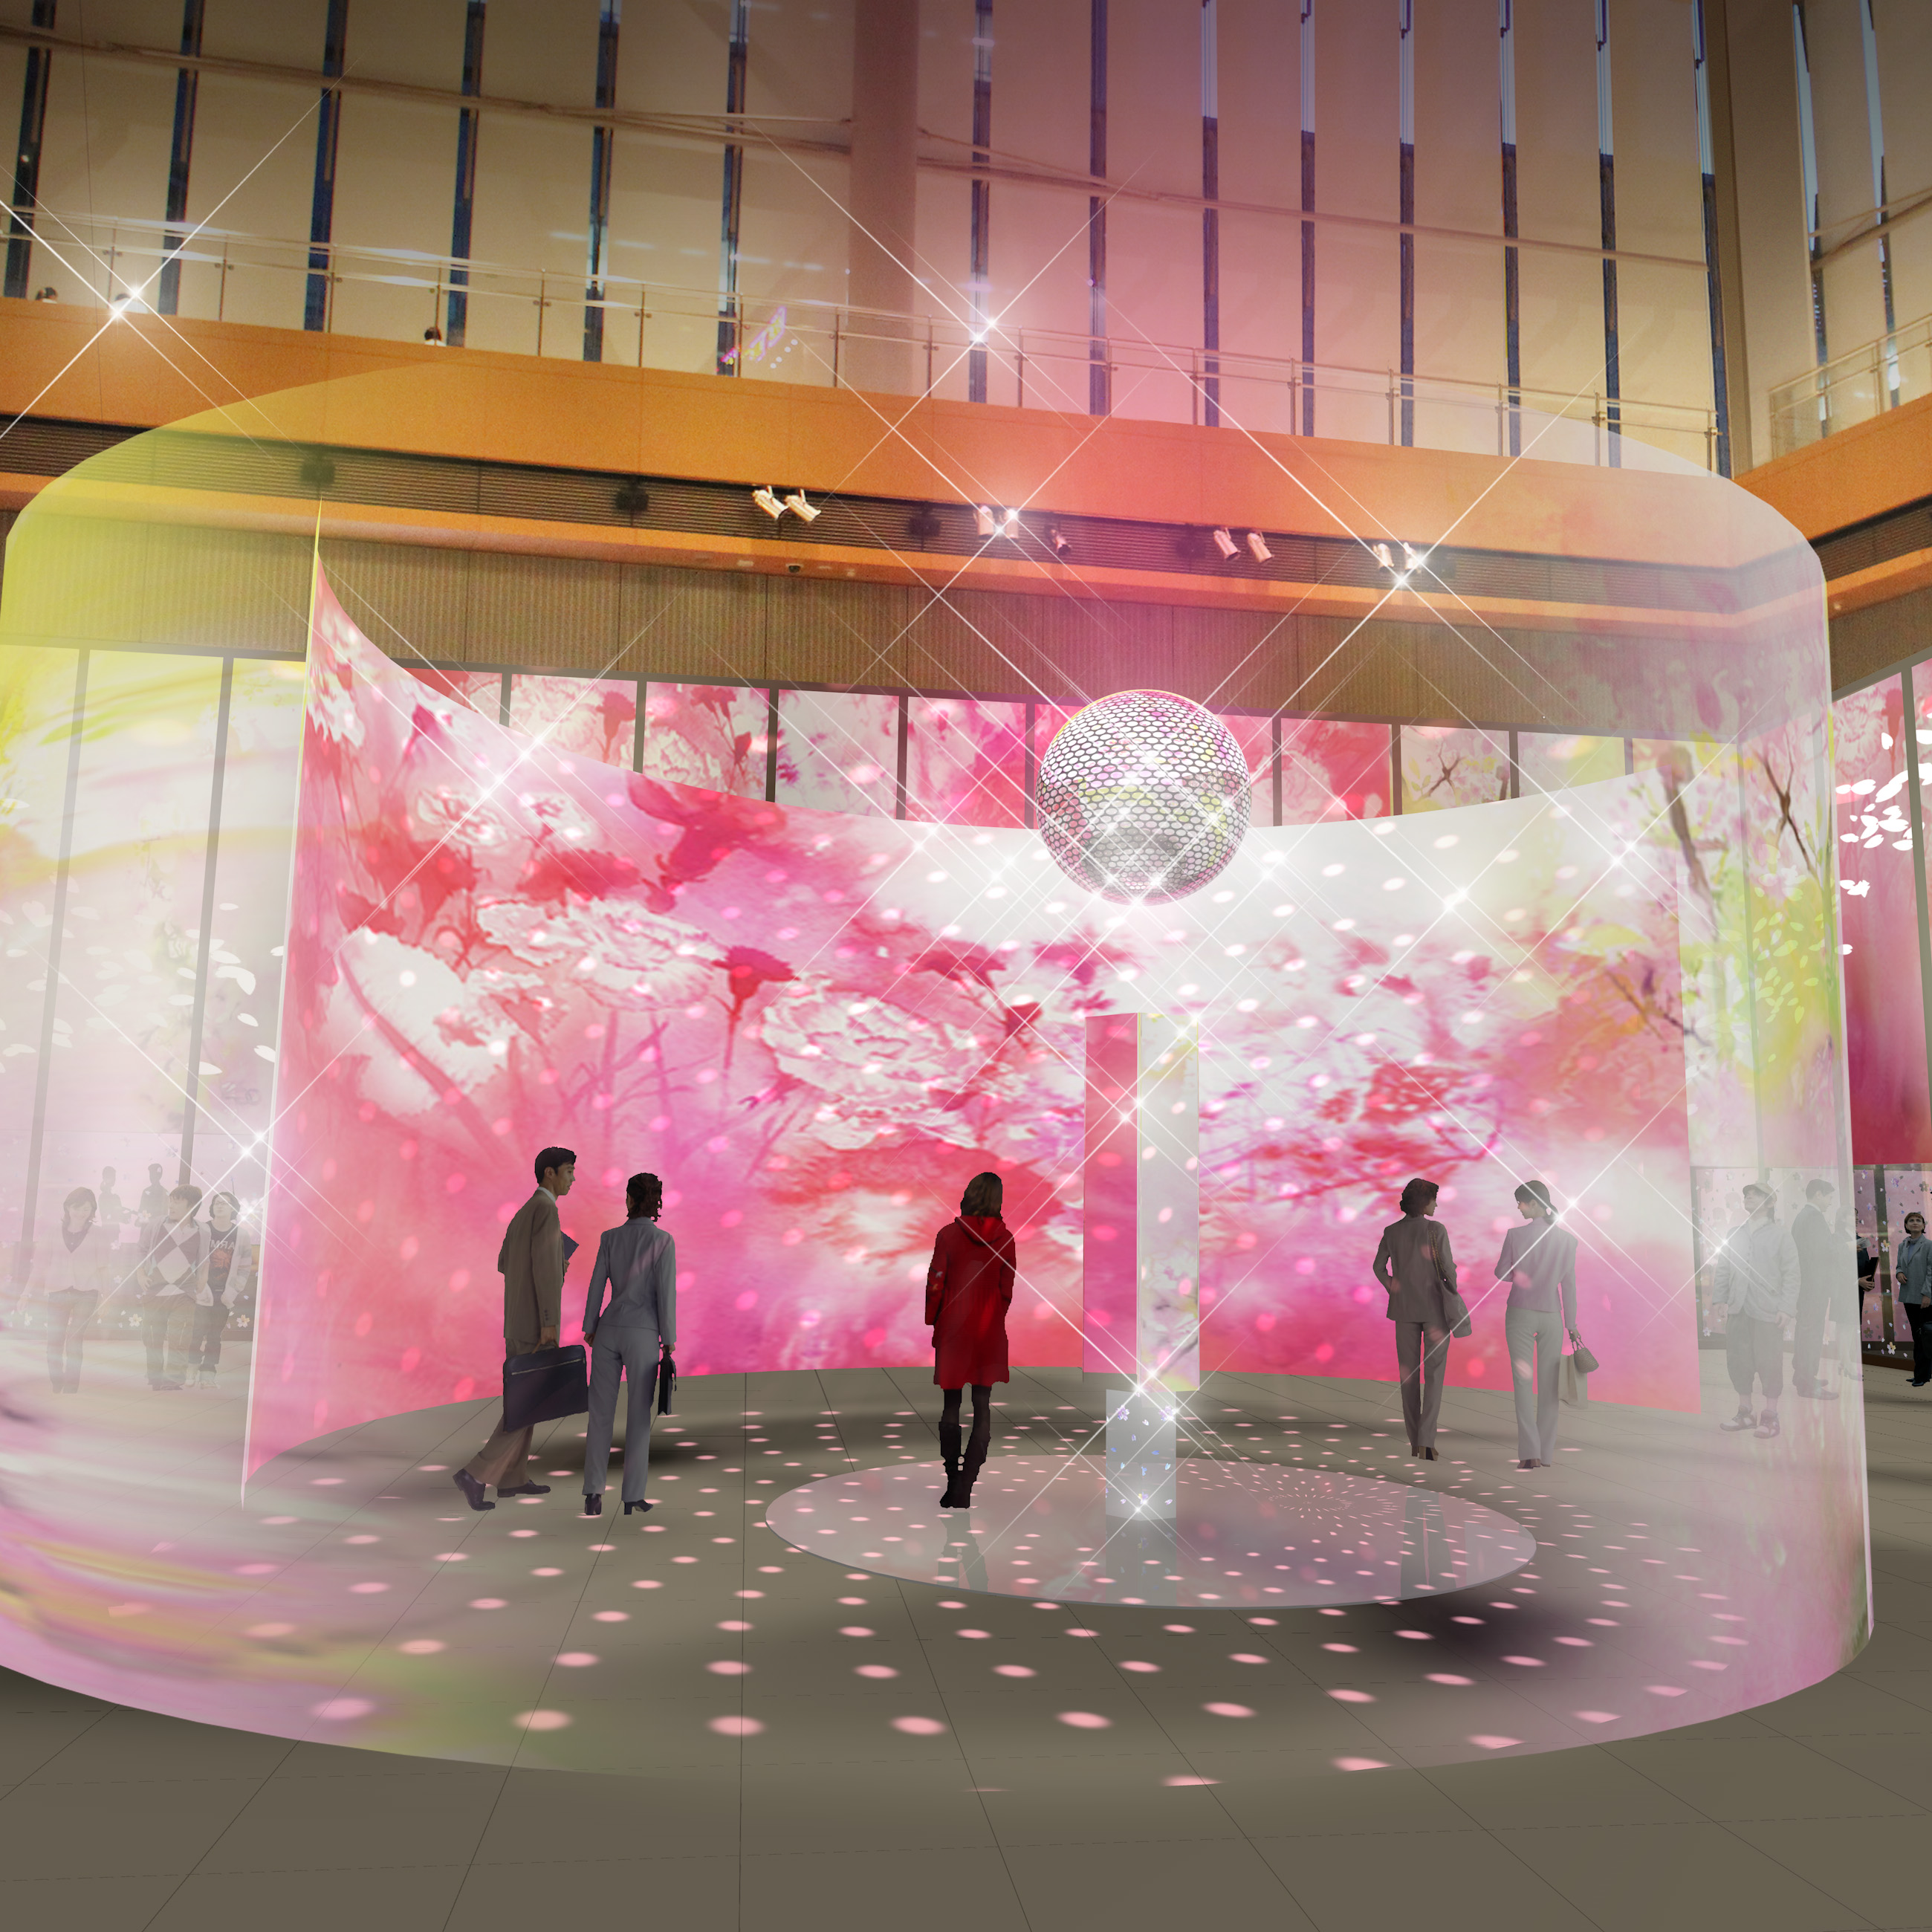 SAKURA in Marunouchi - Art Installation by OHGUSHI (article by amuzen)